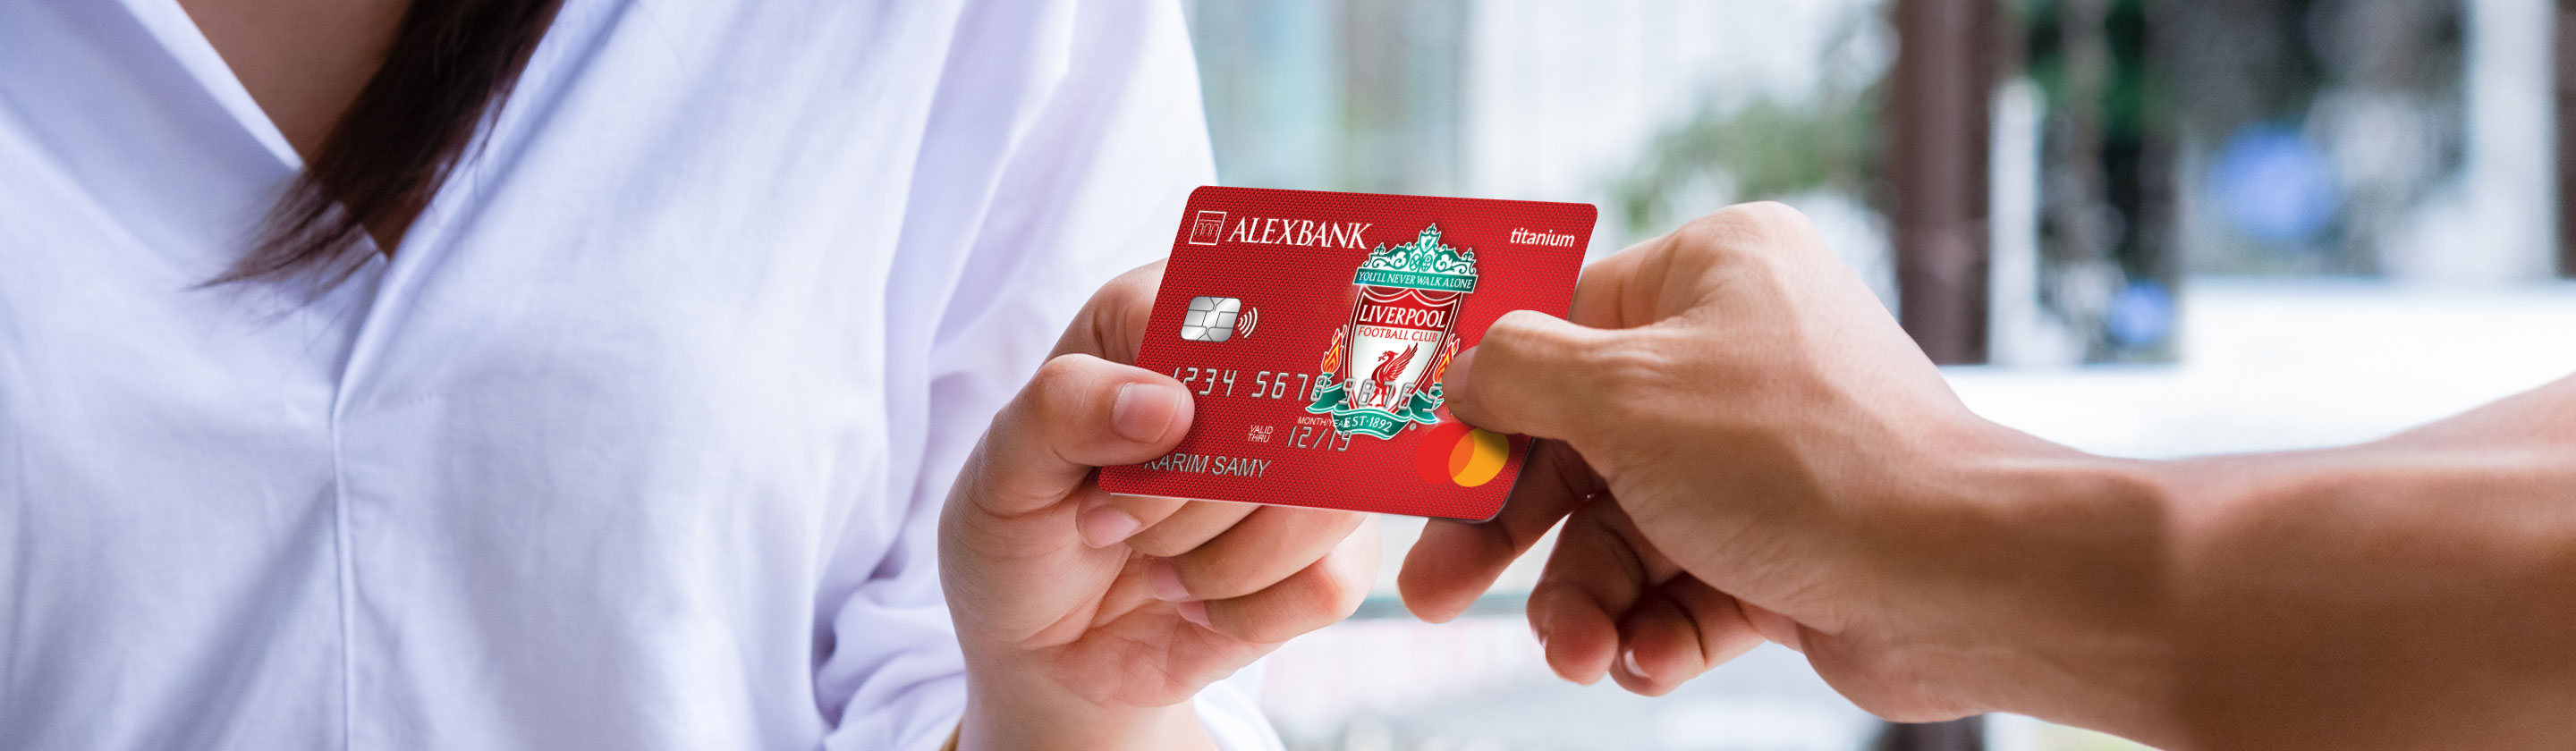 Liverpool Titanium Credit Card